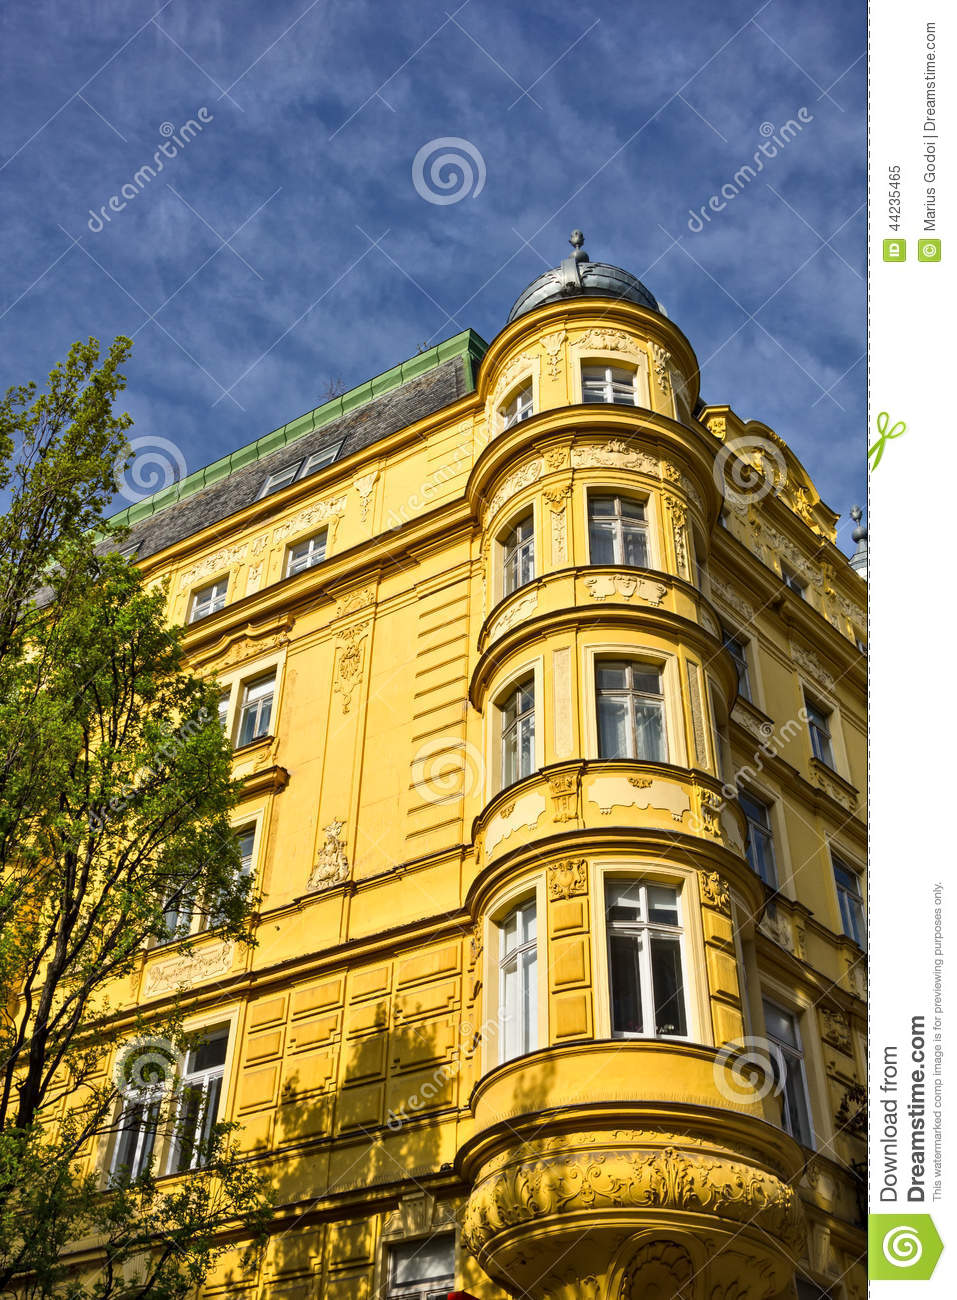 Vienna buildings architecture stock photo image 44235465 for Architecture vienne